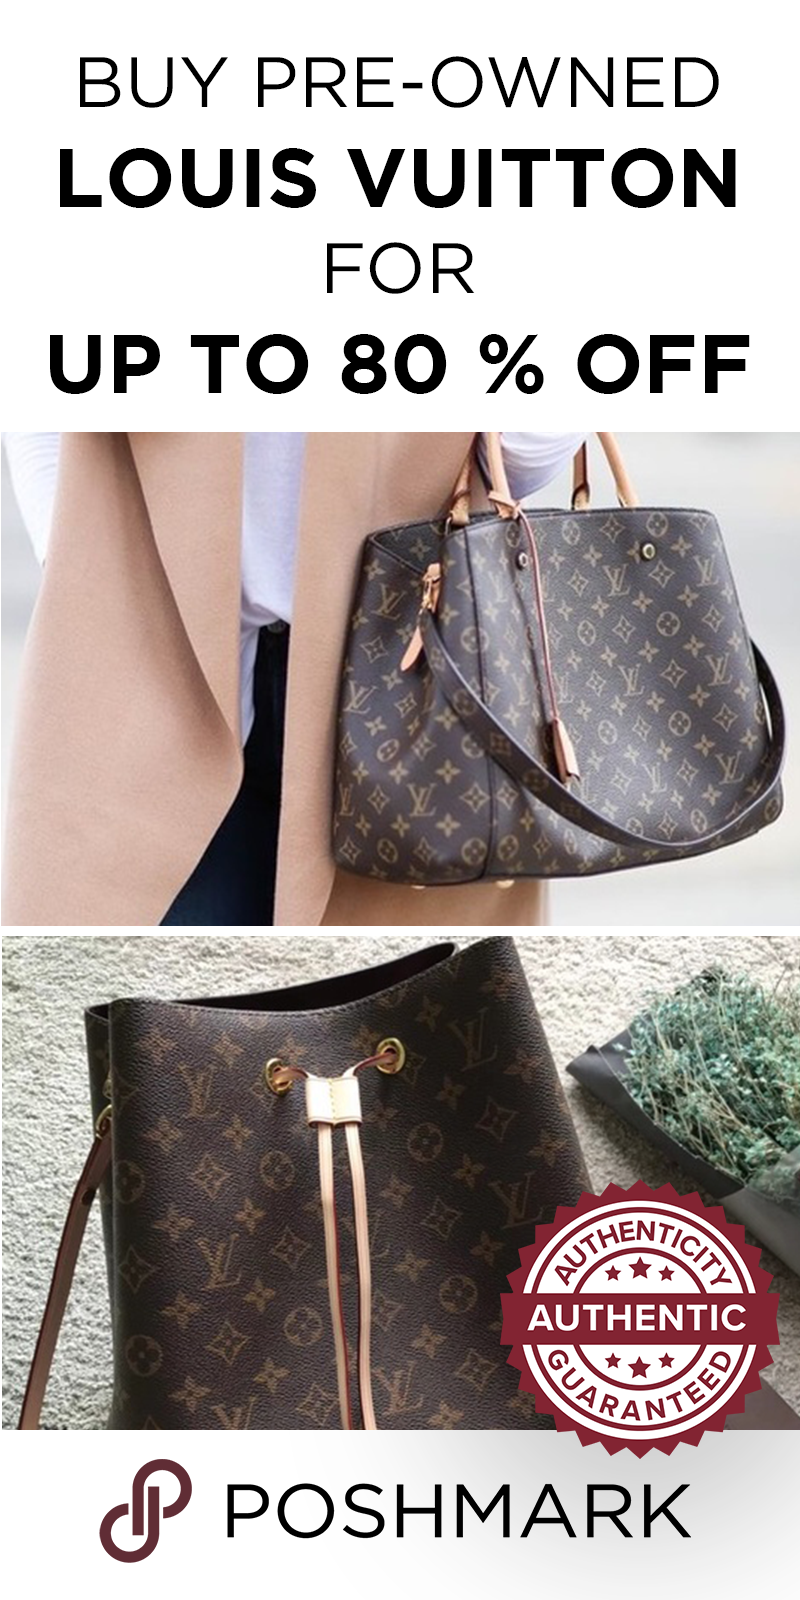 449578a95fc Buy pre-owned Louis Vuitton handbags and other designer luxury ...